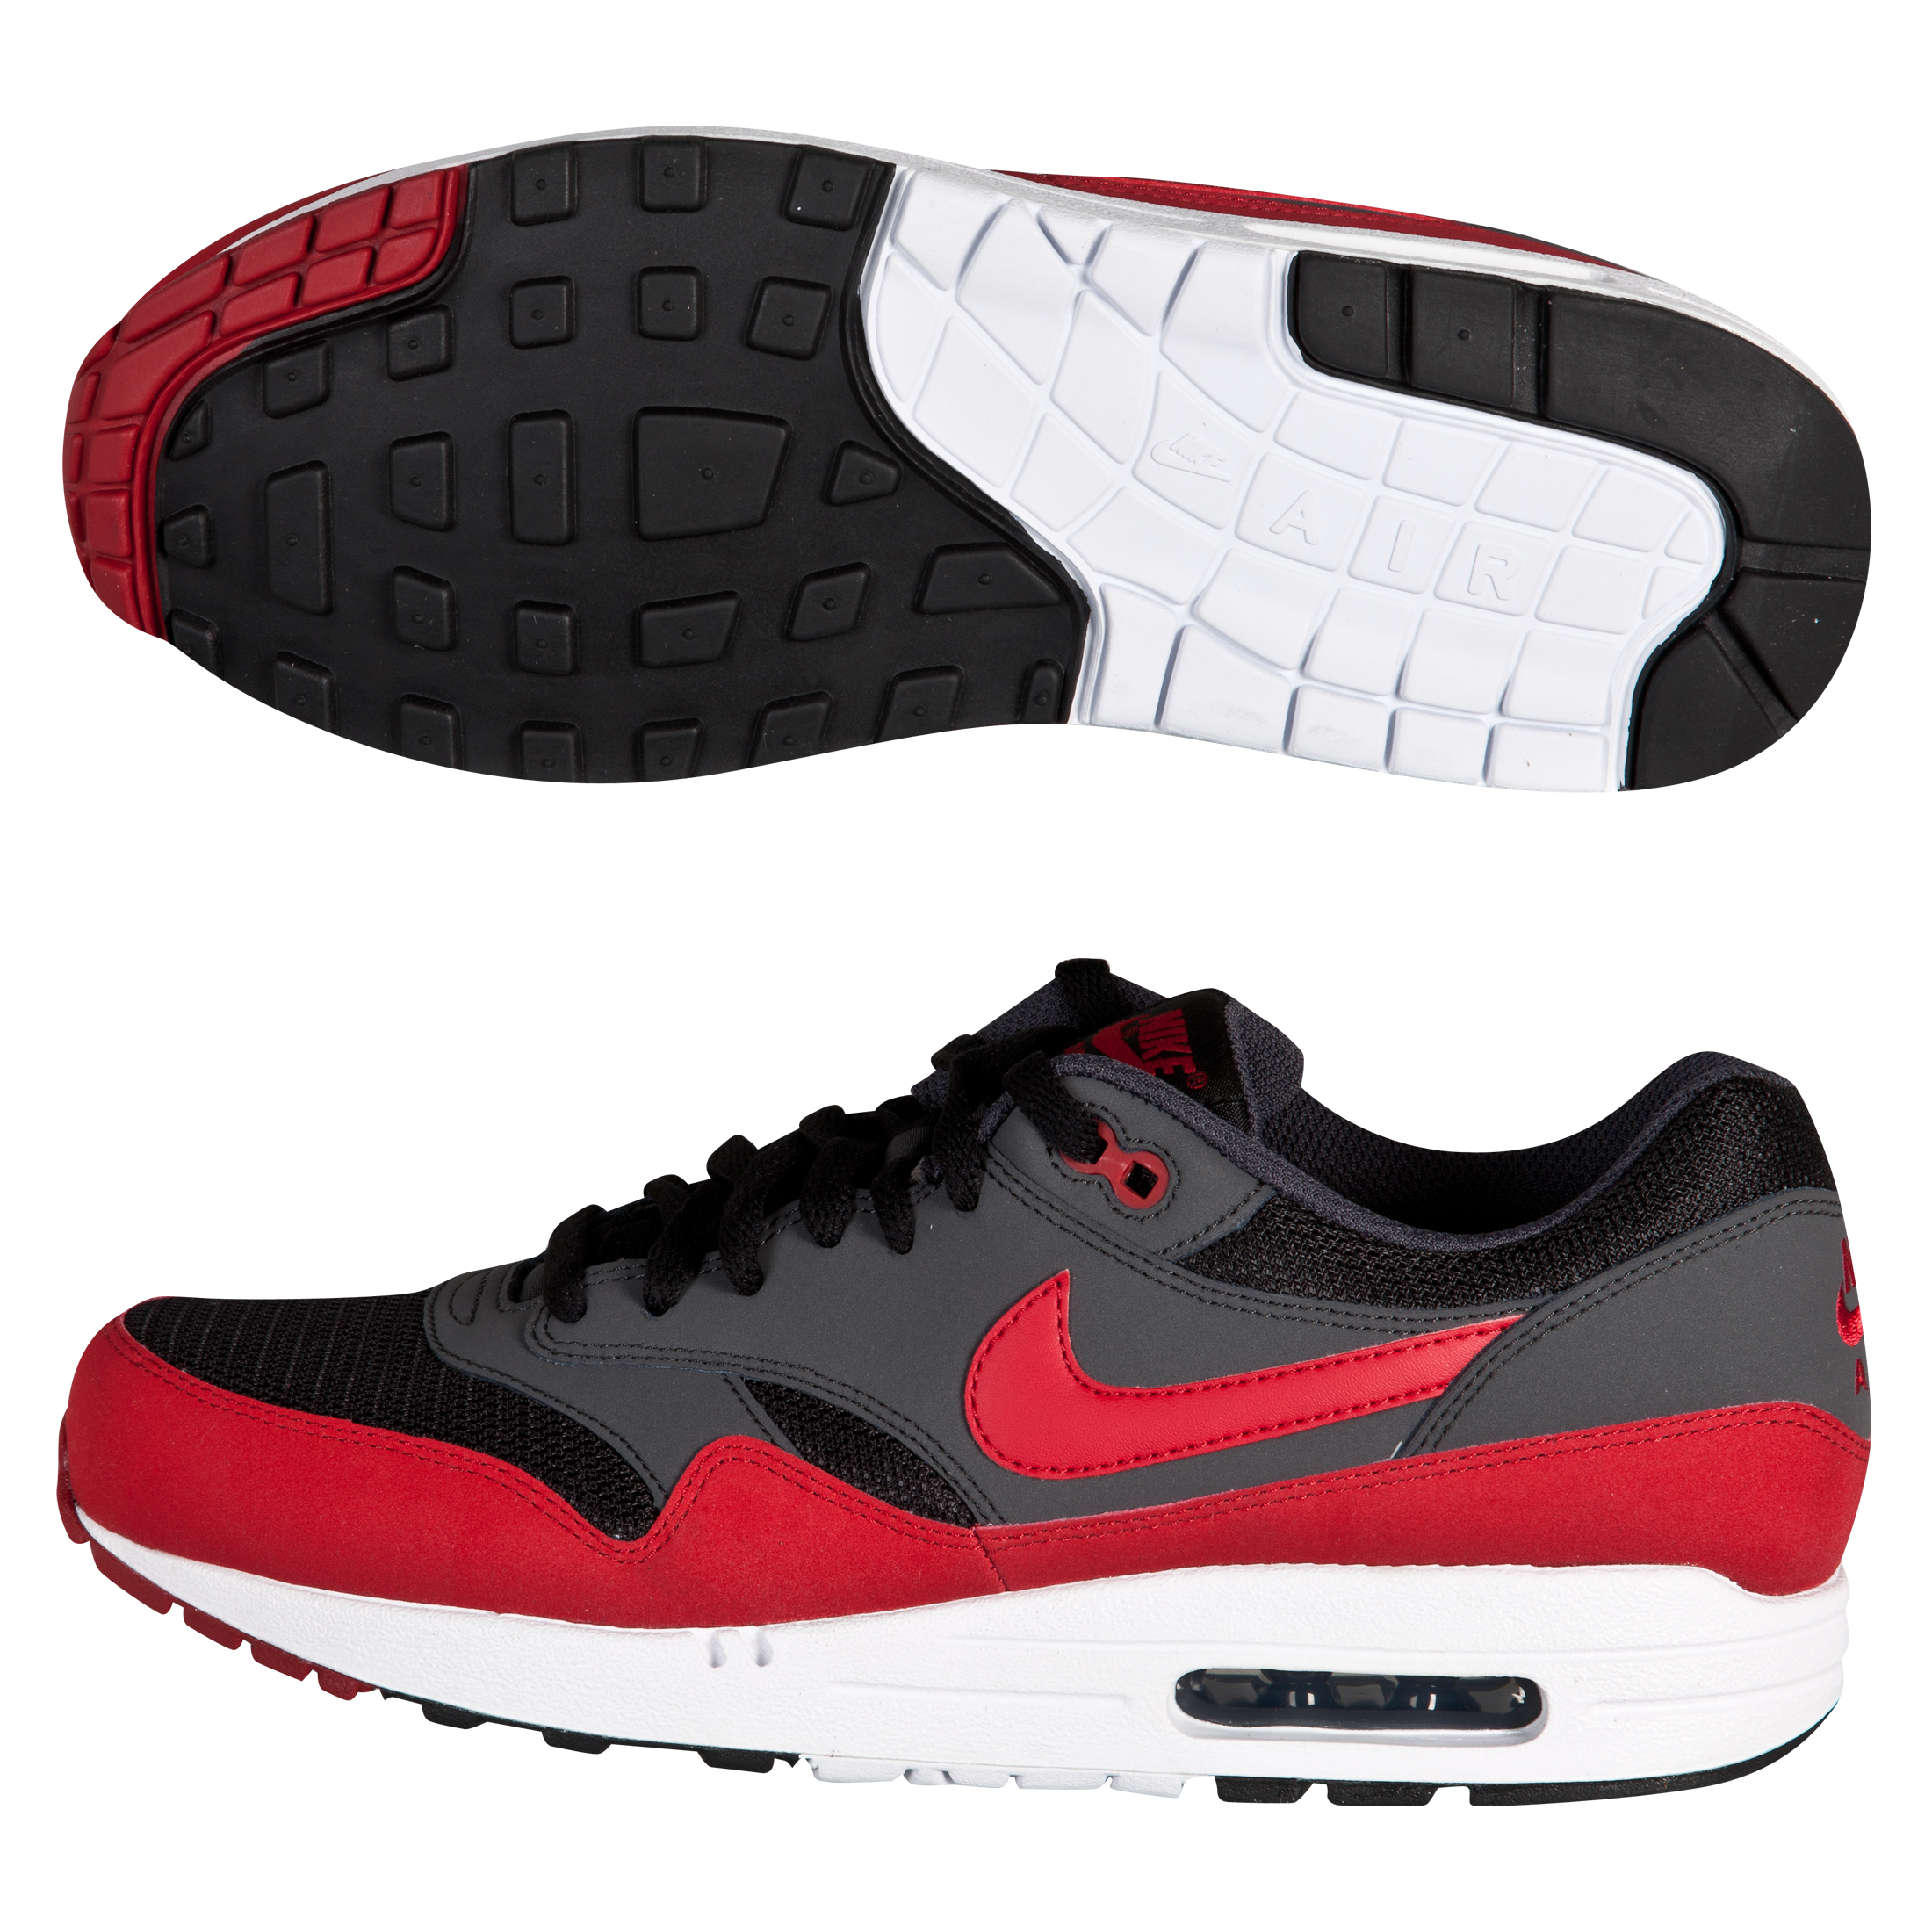 Nike Air Max 1 Trainers- Red/Black